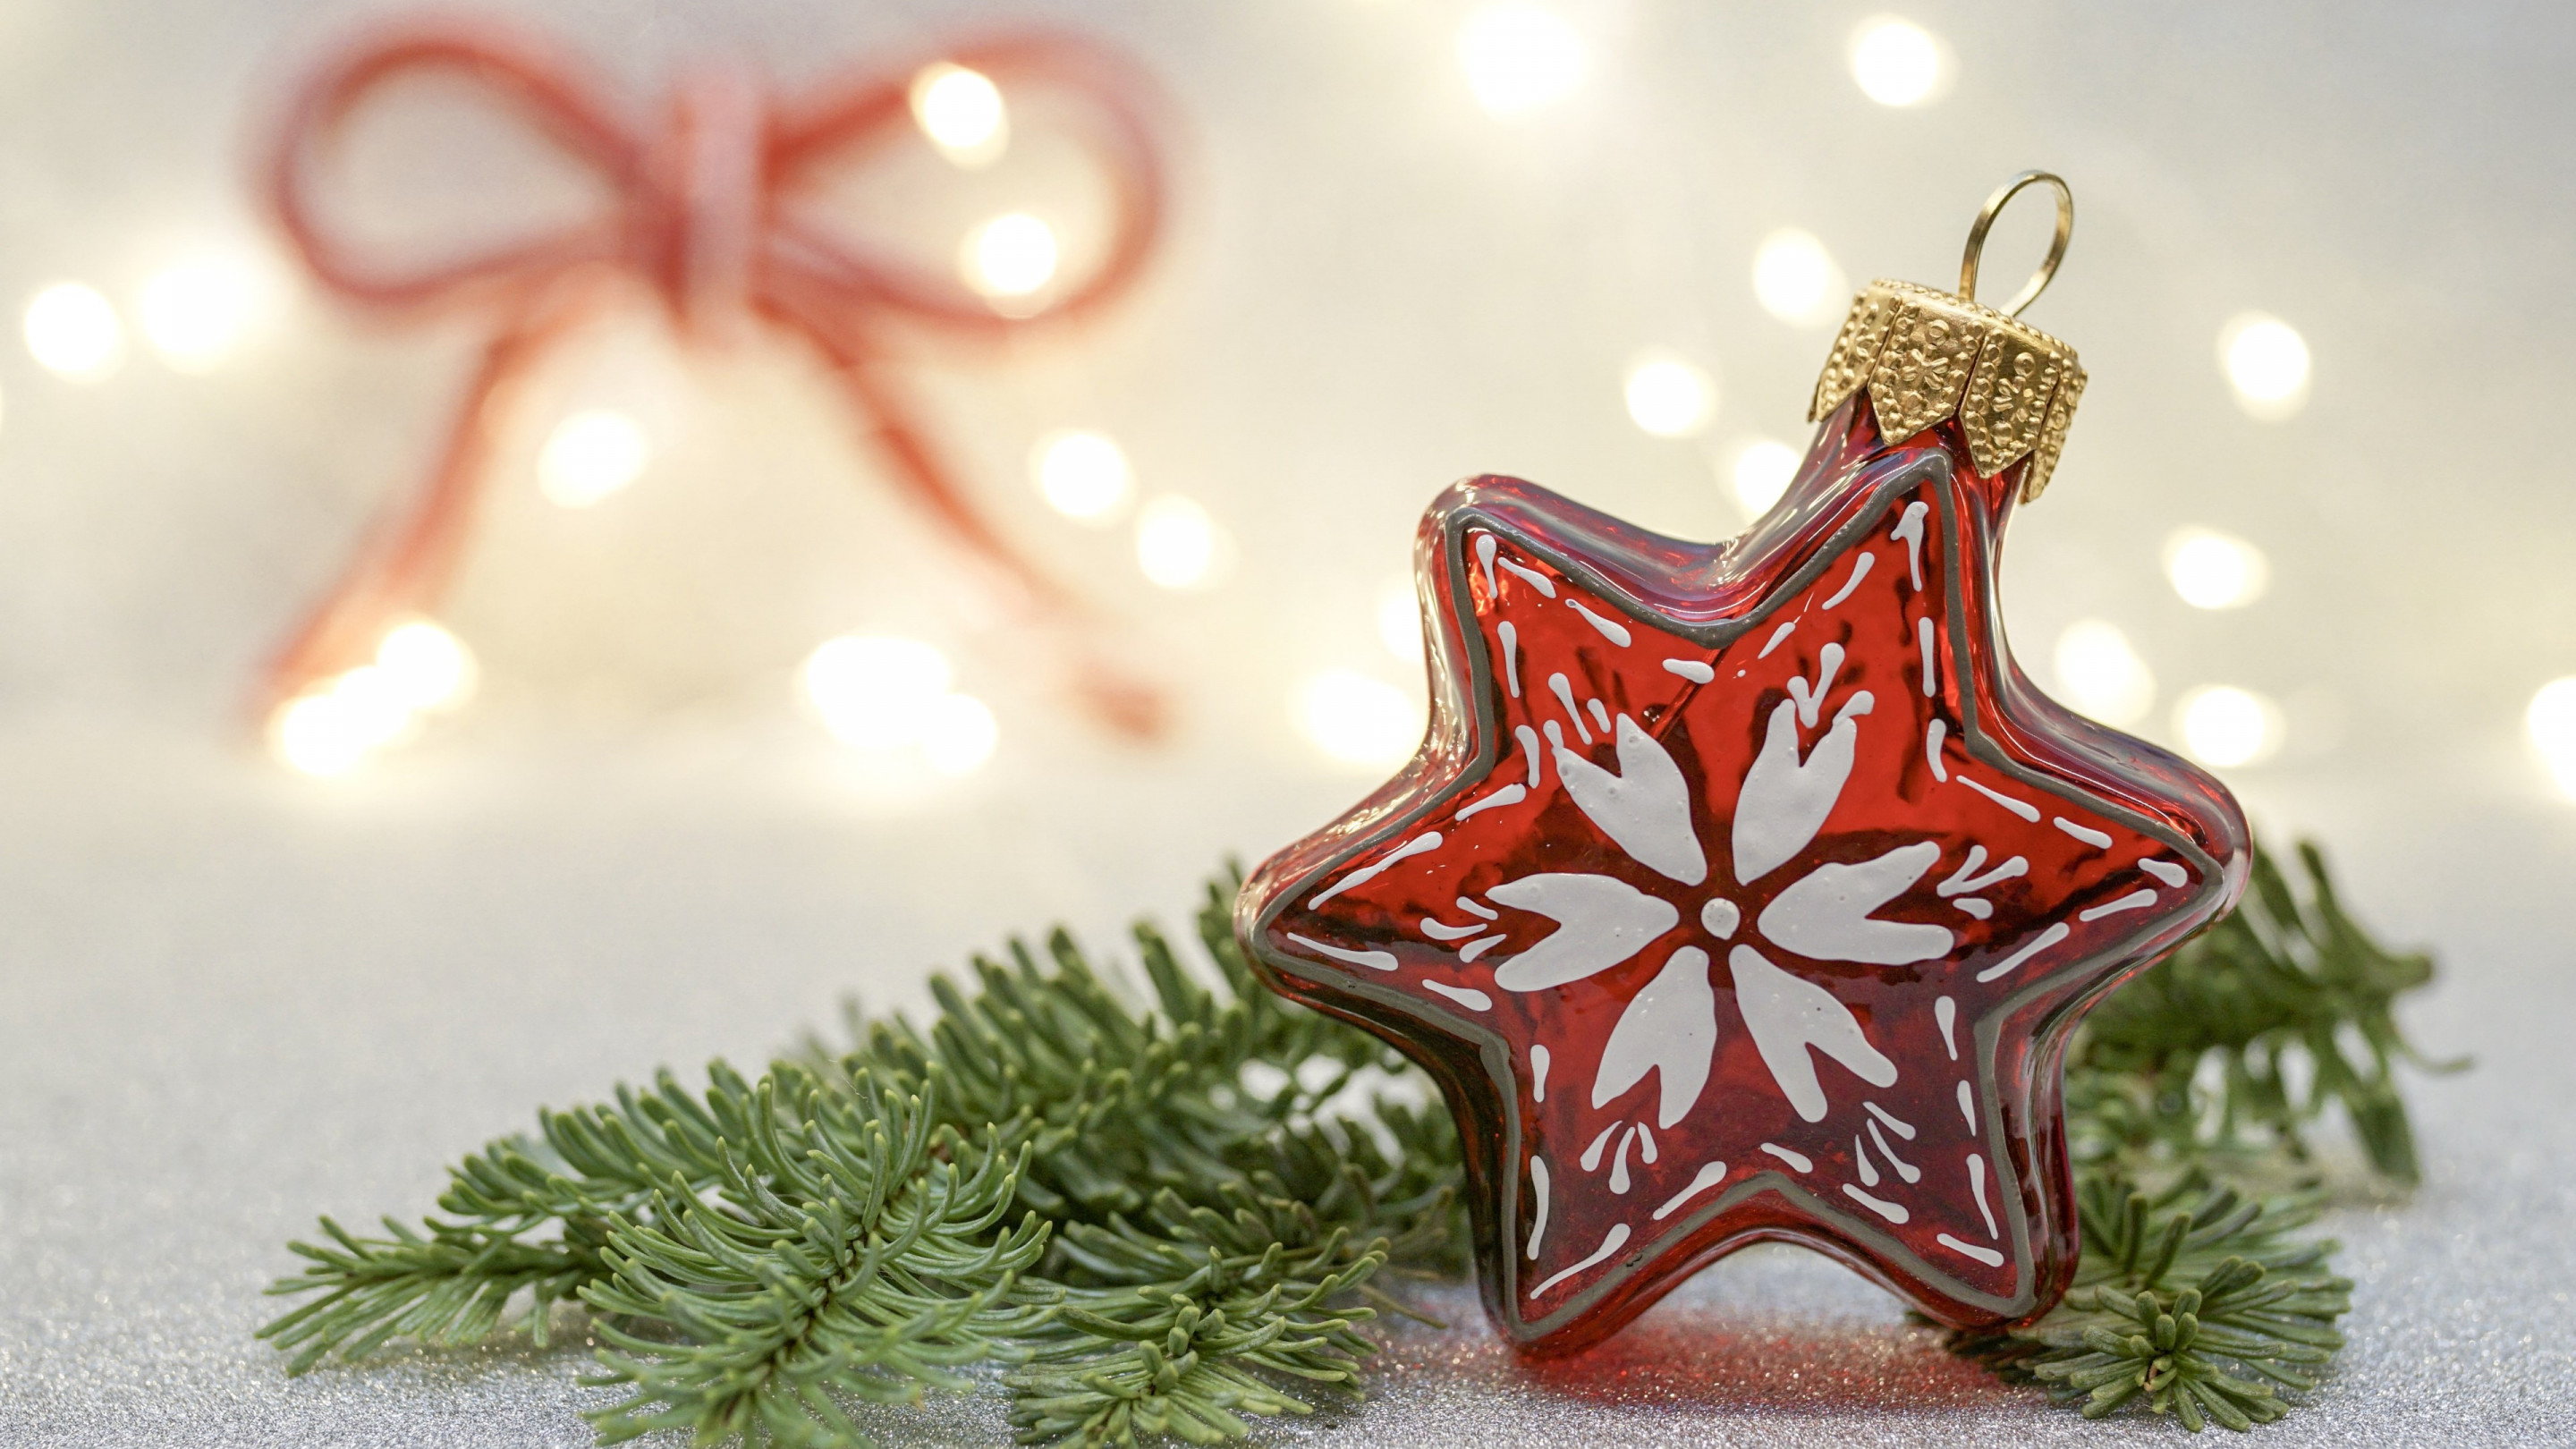 Christmas decorations wallpaper 2880x1620